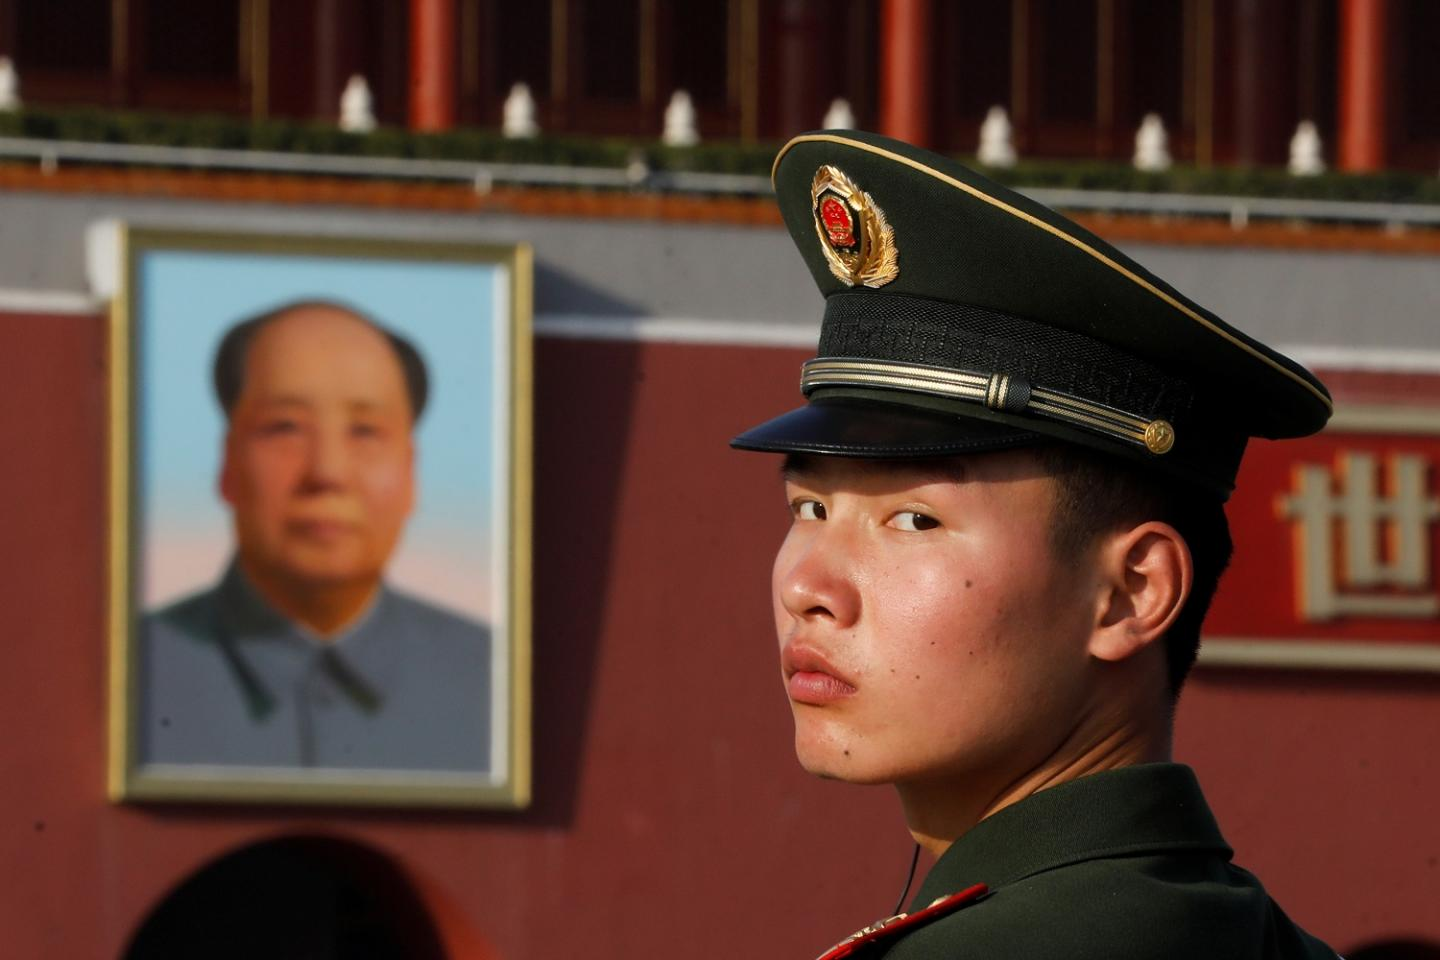 Prepare for a More Authoritarian China